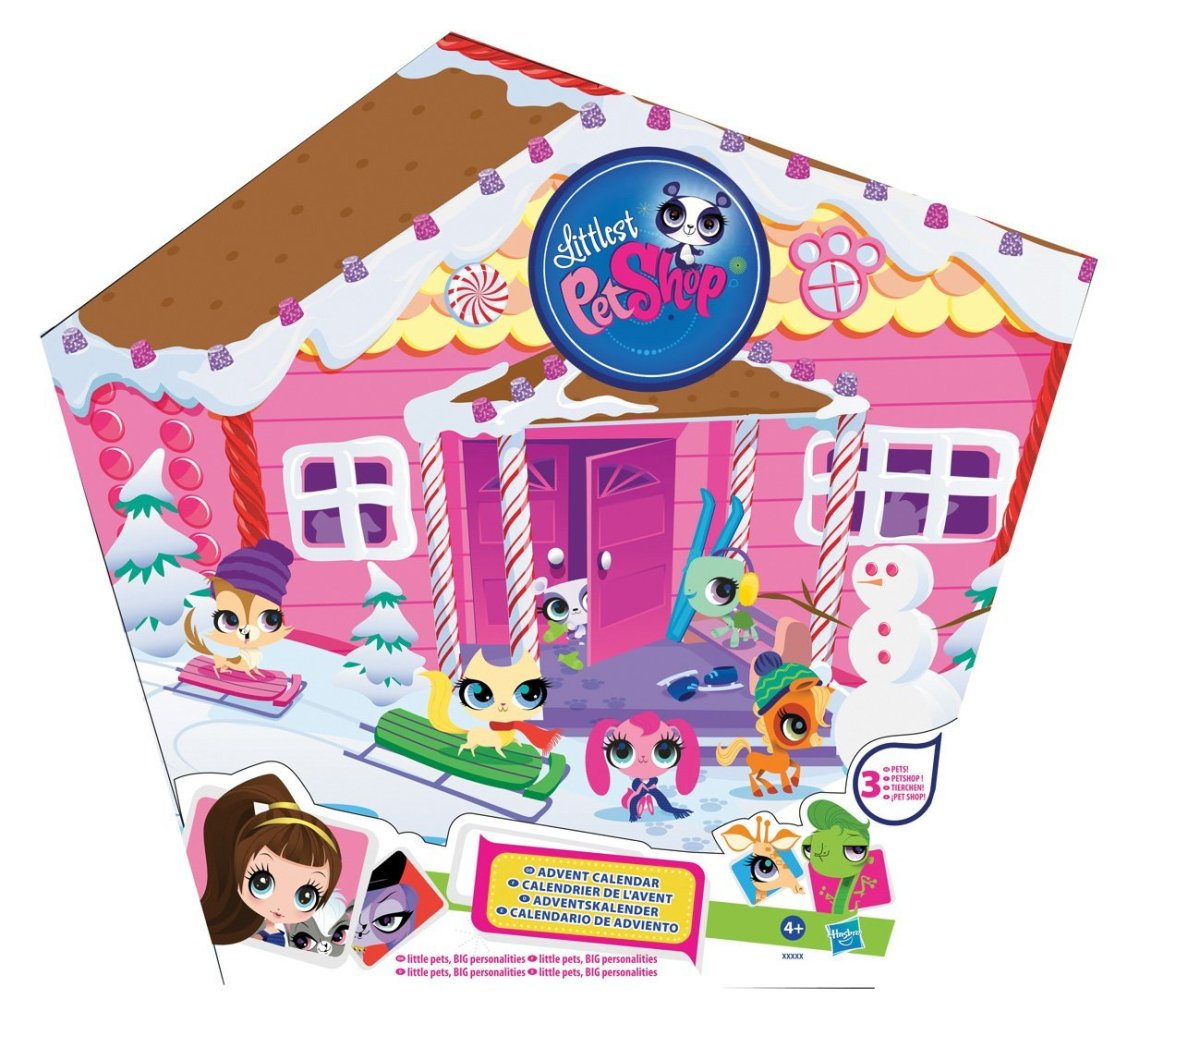 Littlest pet shop advent calendar 2017, 2018